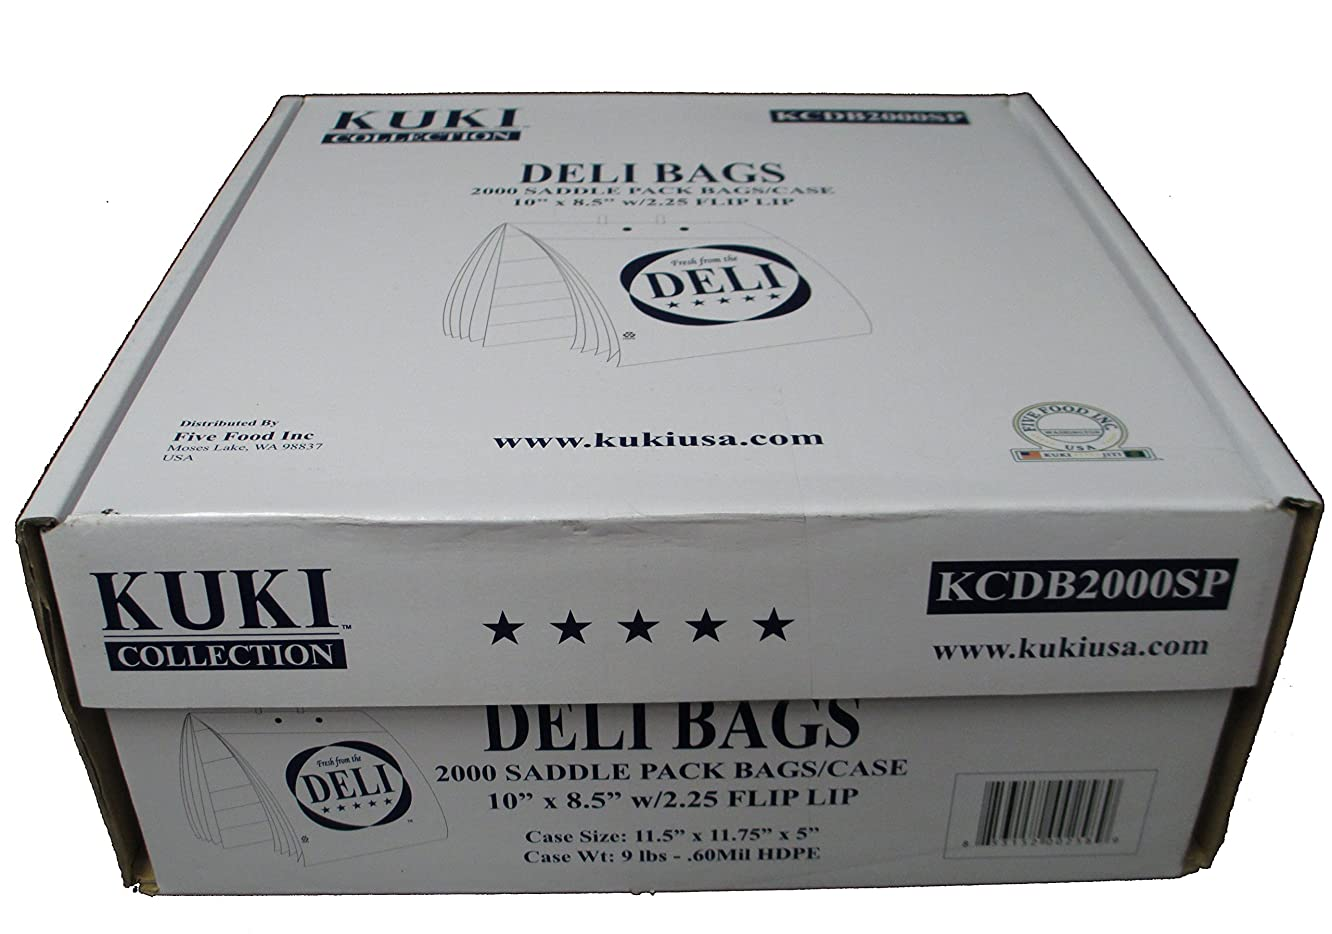 Kuki Collection Deli Bags - Case of 2000